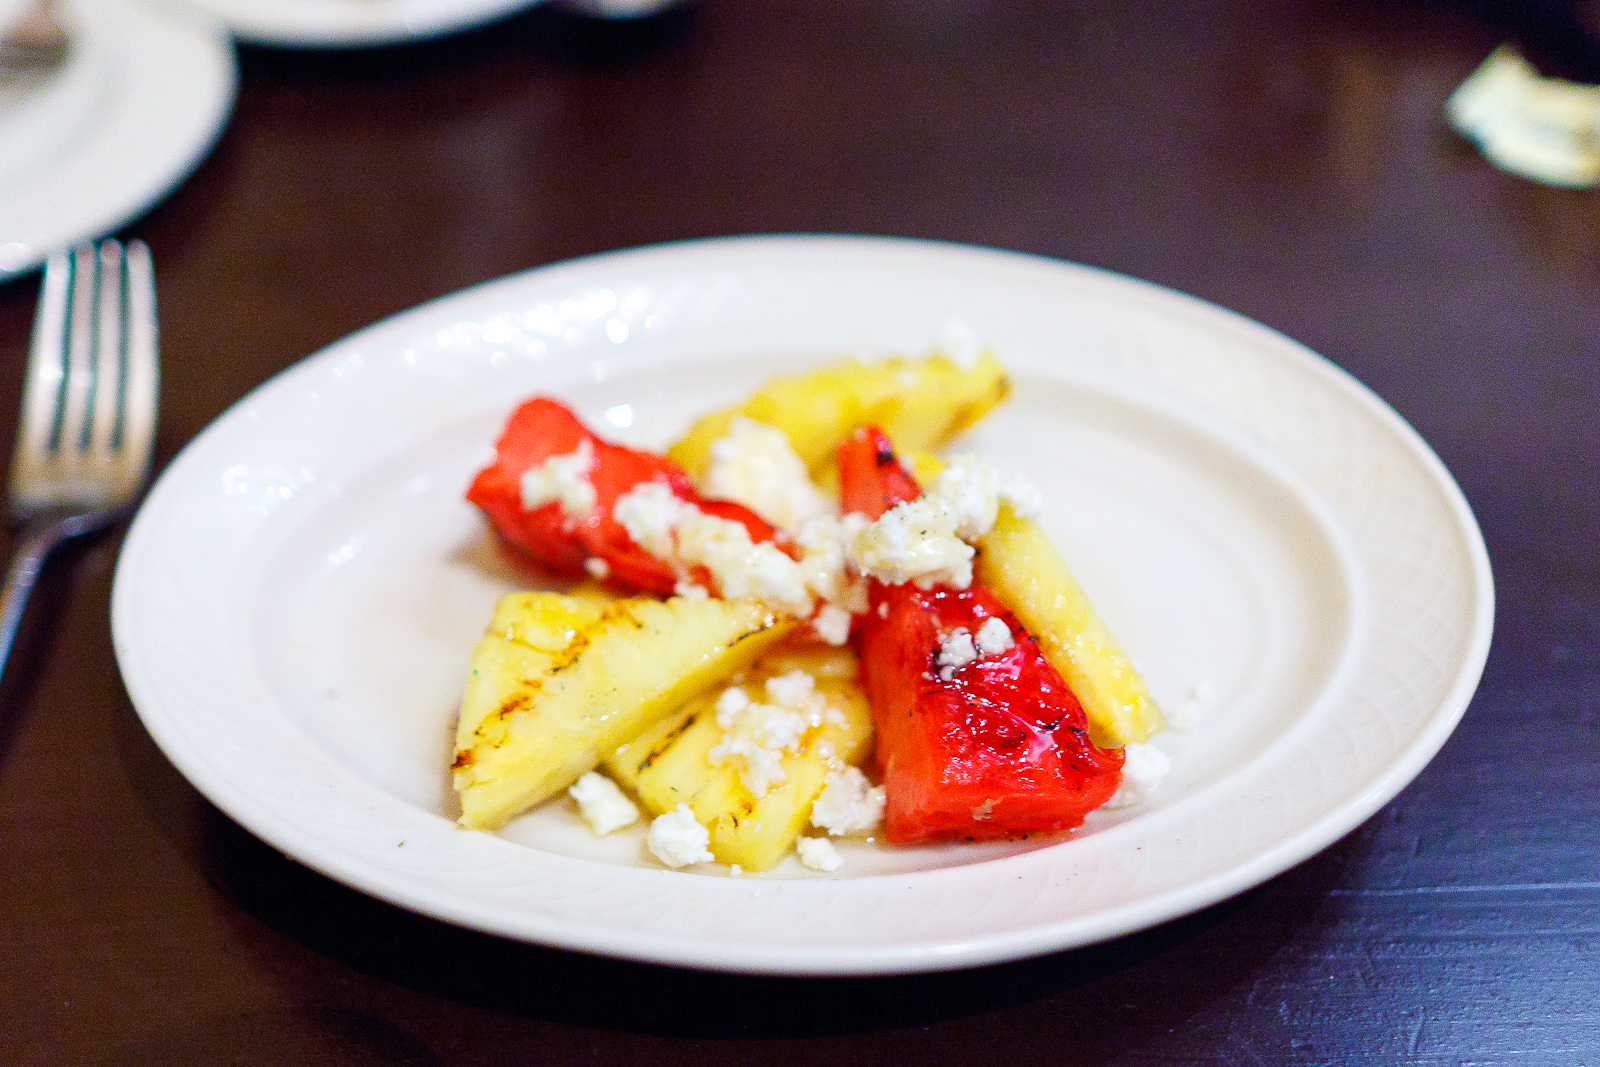 Grilled pineapple and watermelon, feta, honey, crushed pepper ($5)